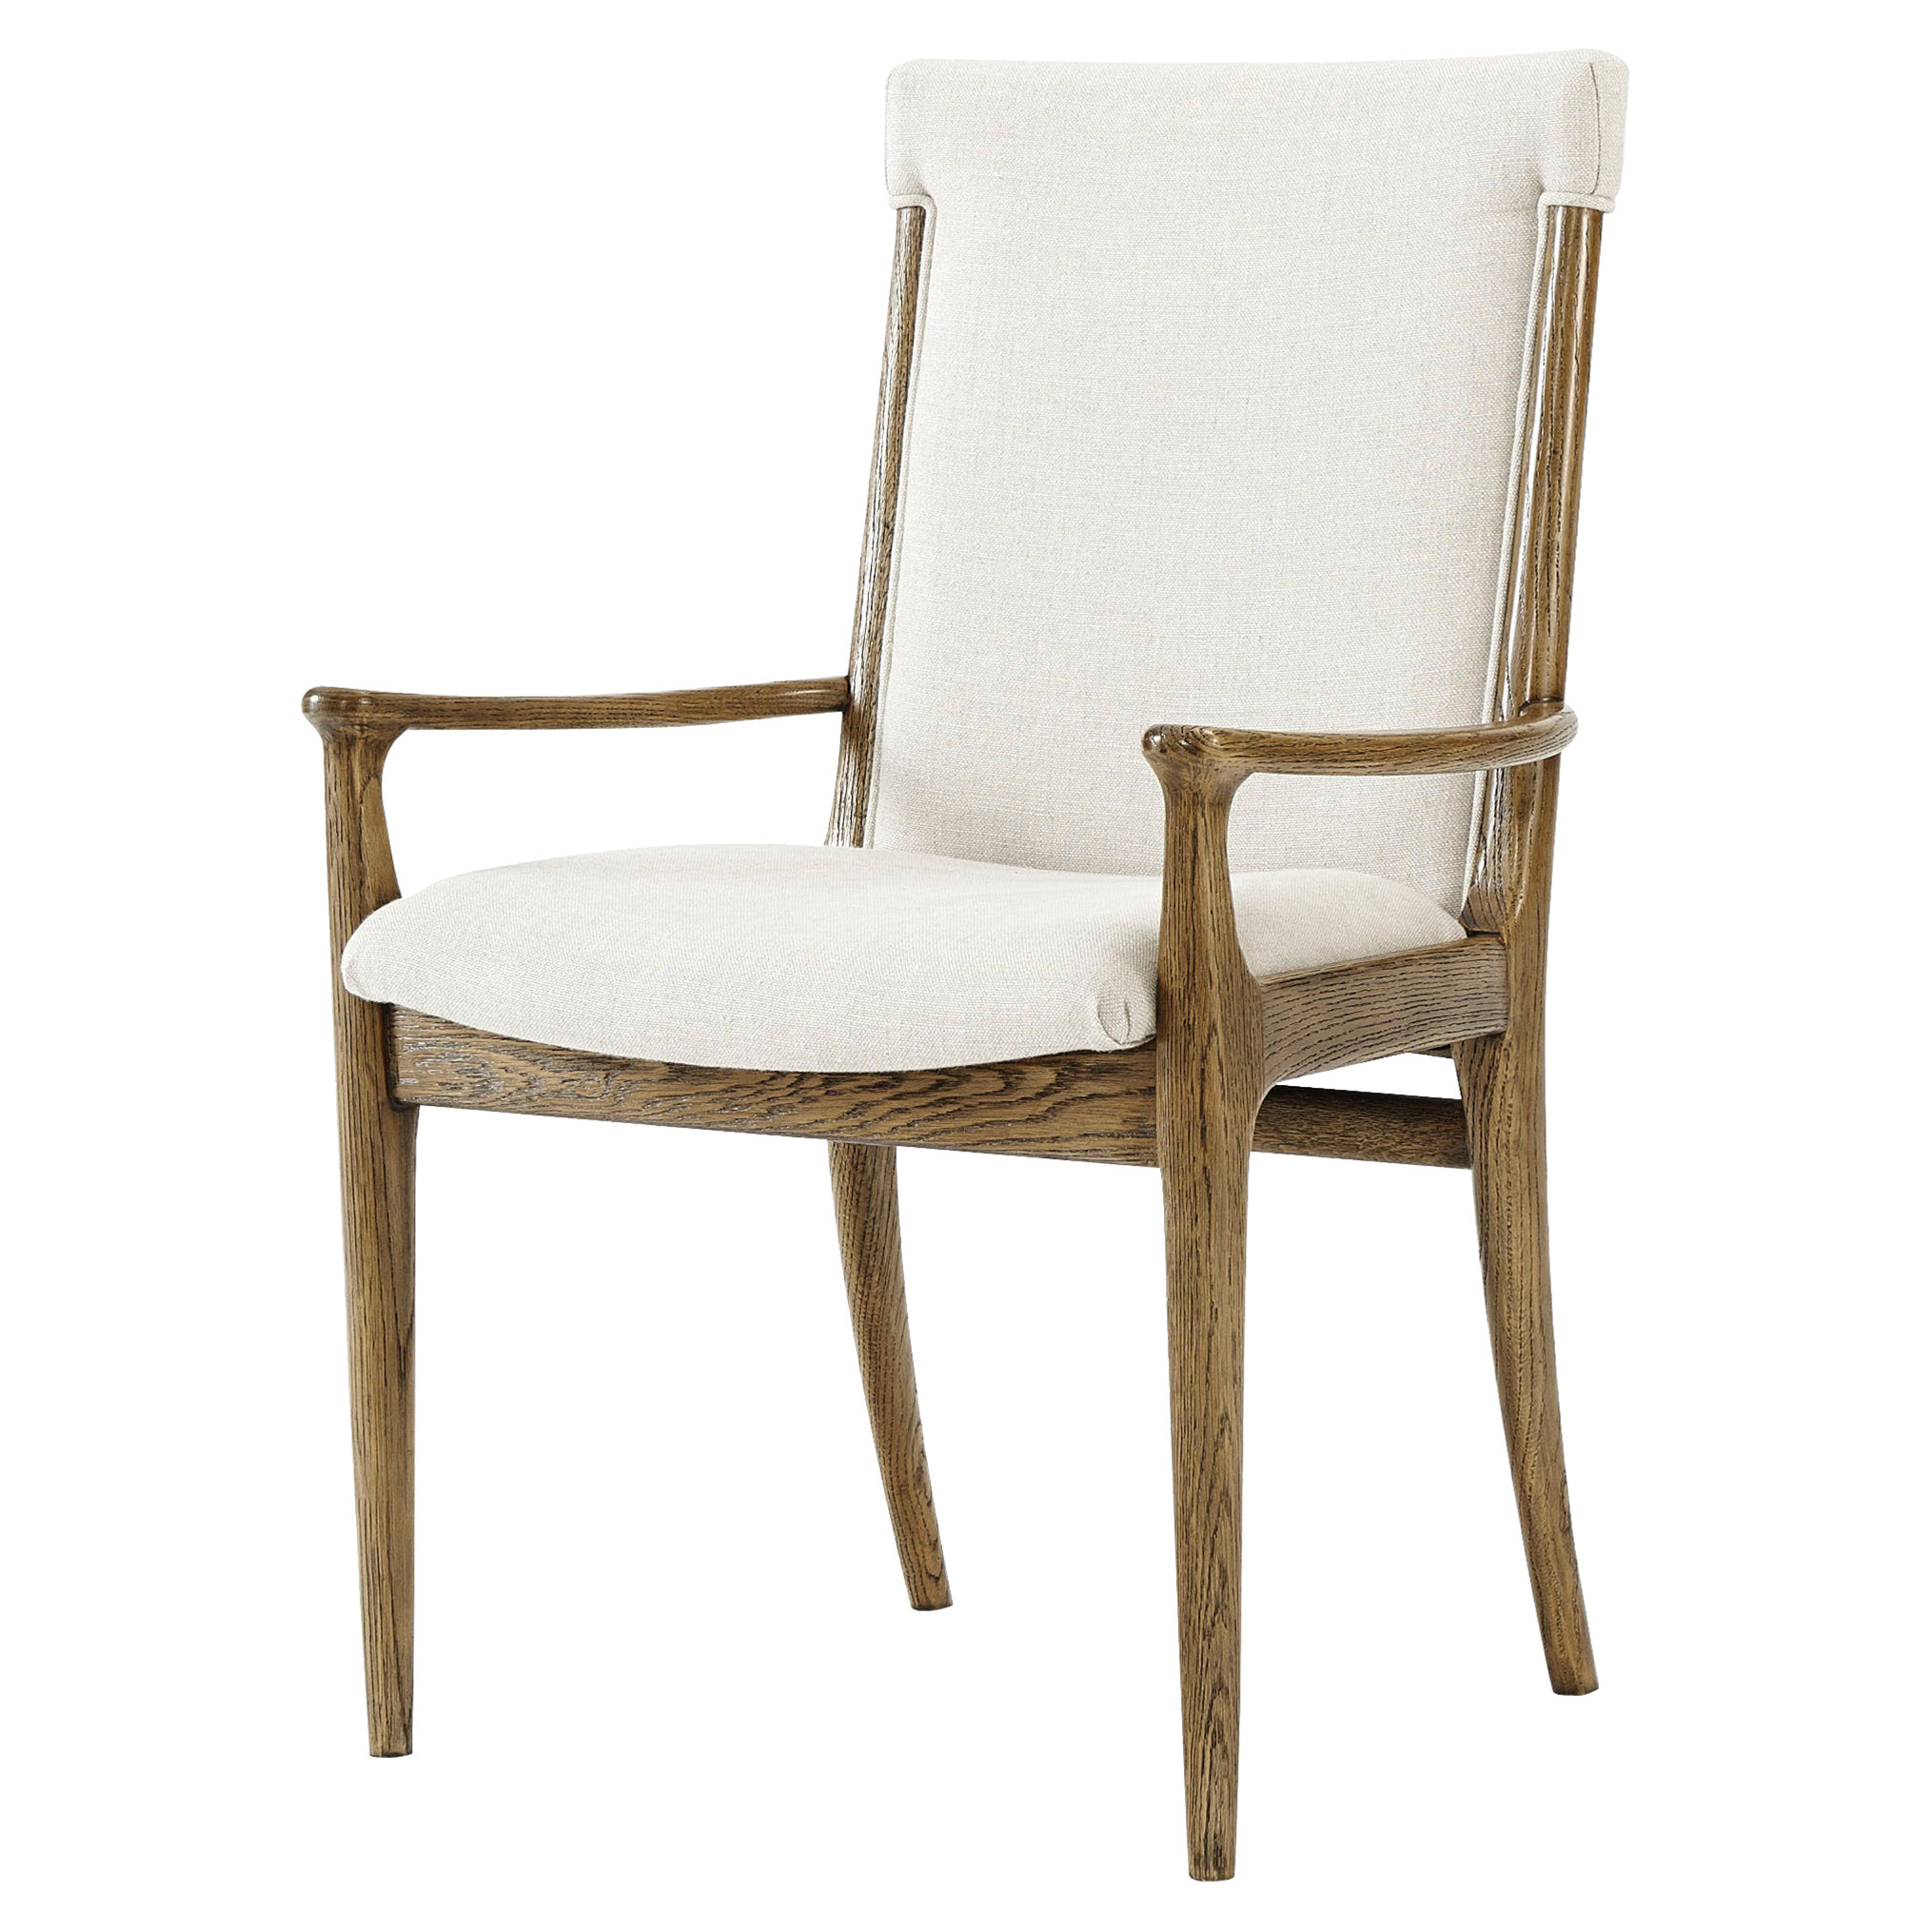 Designer Dining Room Chairs - Eclectic Dining Room Chairs | Kathy ...